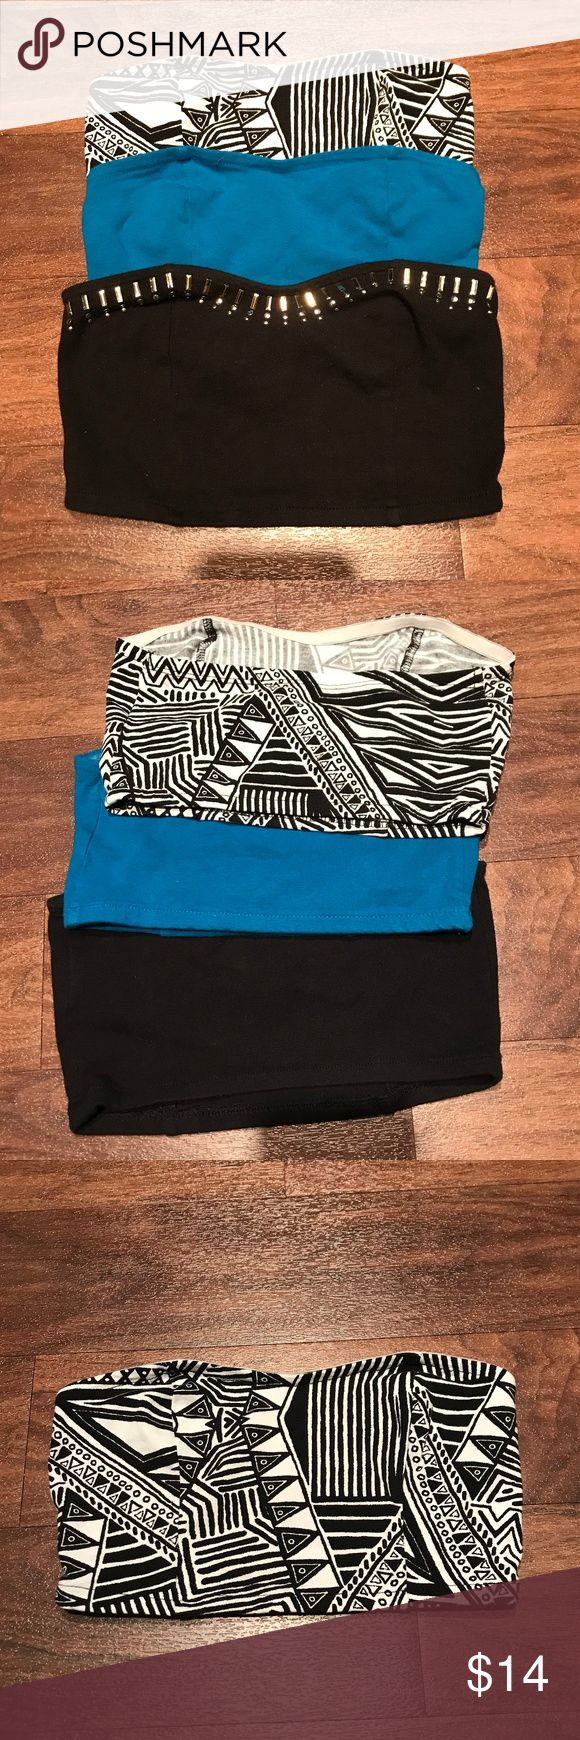 Lot of 3 Decree Bandeau Tops Lot of 3 really cute bandeau tops. Size XS. Elastic around the top and bottom, no padding. They're still in really great shape, I've worn them each maybe once or twice. The black one has gold and silver sequins. Perfect for summer time! Decree Intimates & Sleepwear Bandeaus